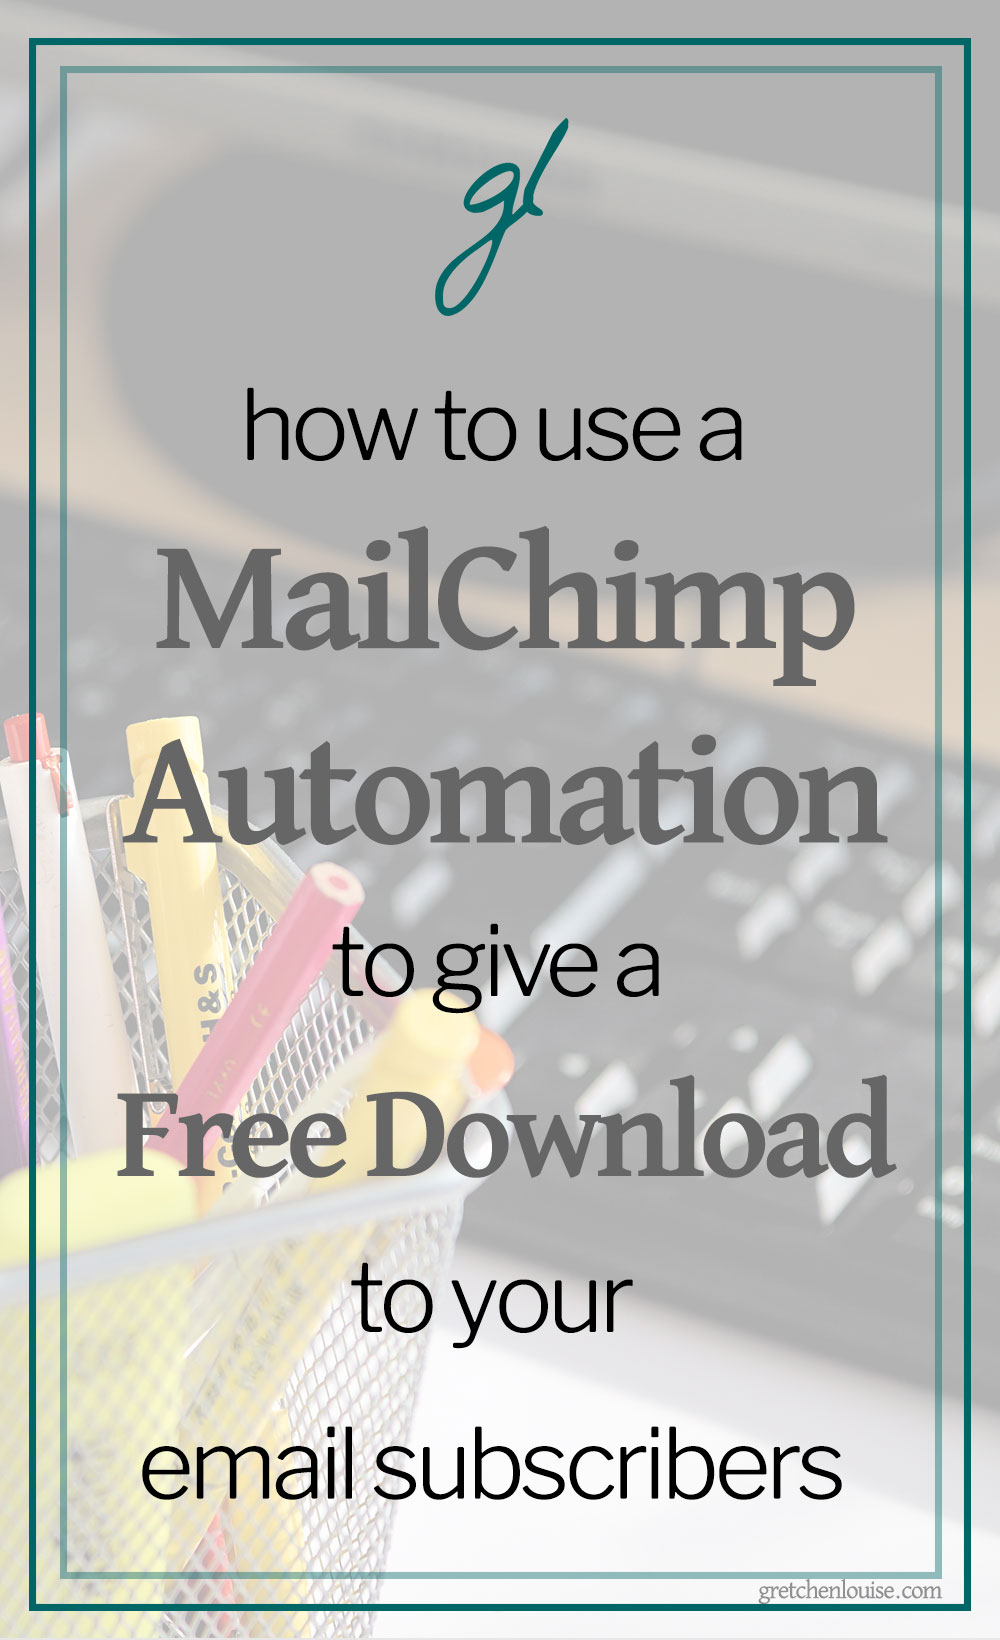 How to Use a MailChimp Automation to Give a Free Download to Your Email Subscribers